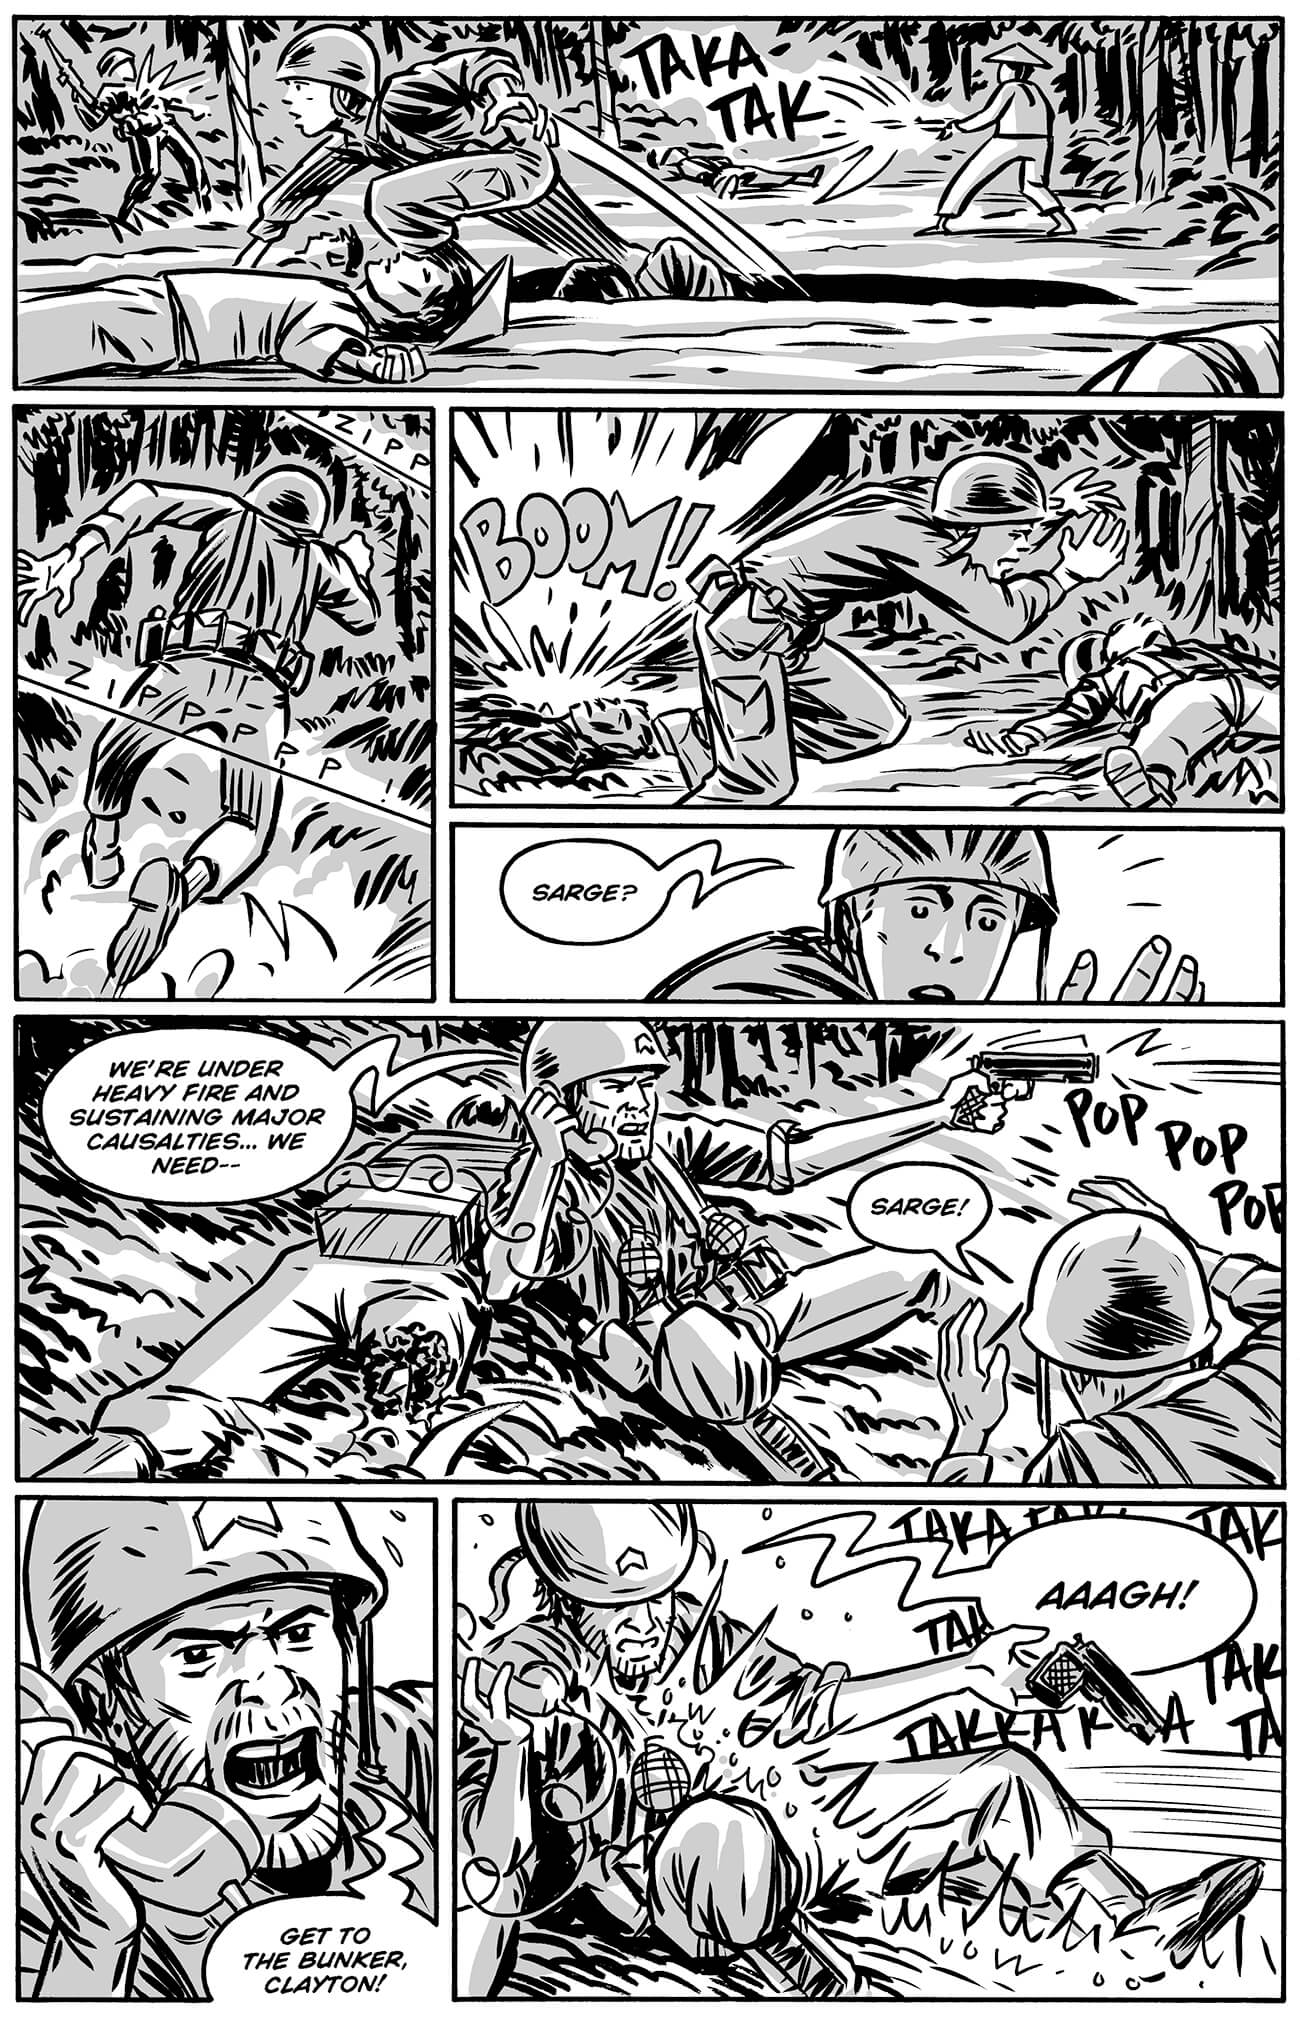 guerillas by brahm revel, page 37